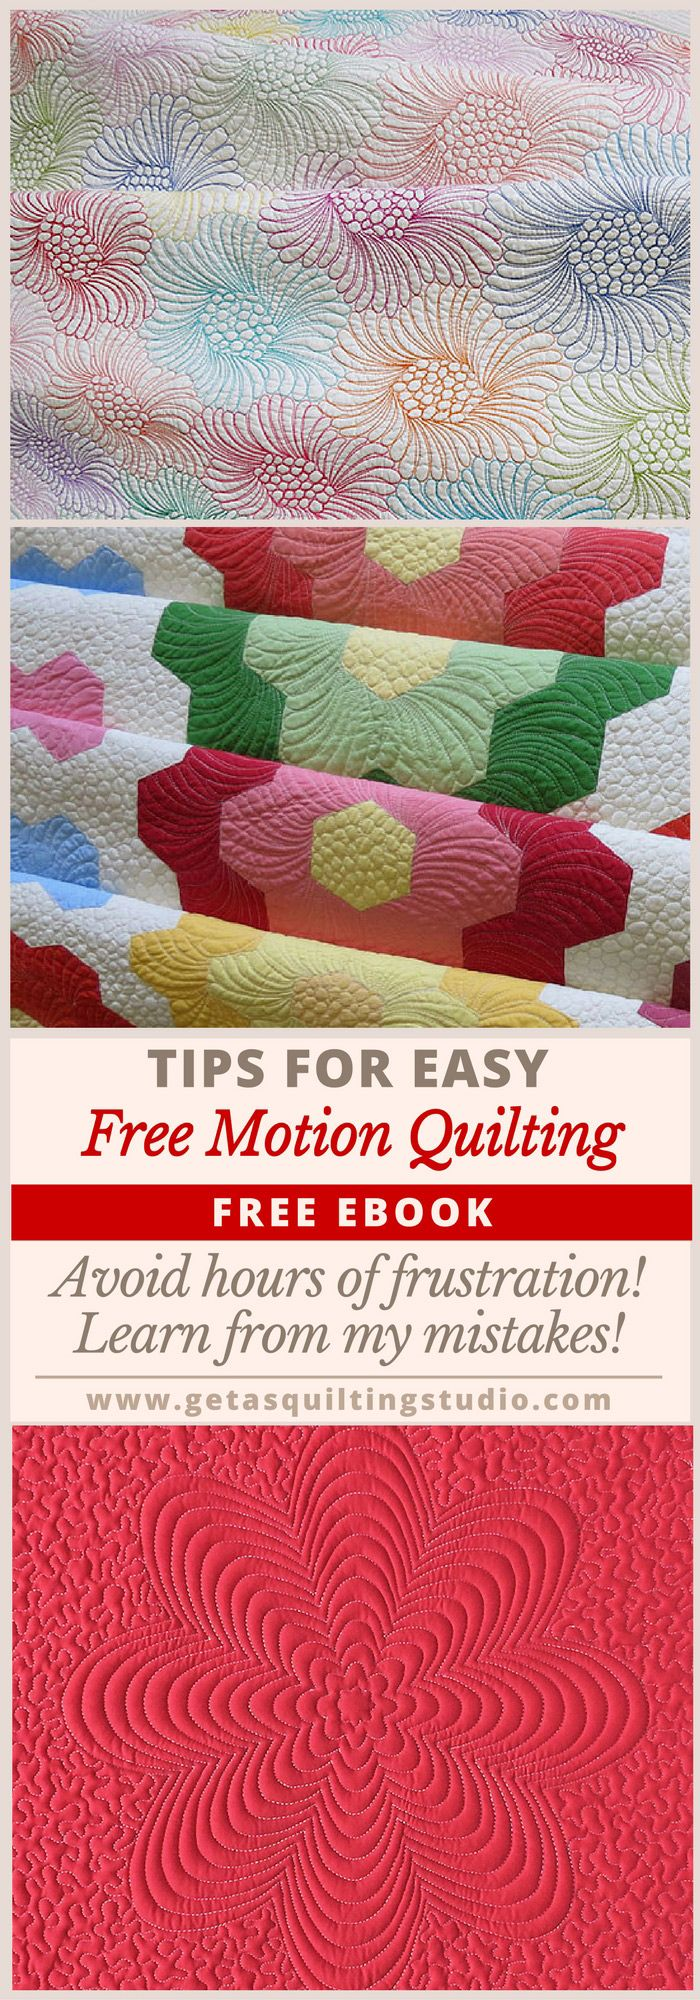 Practice Is Not The Only Key To Successful Free Motion Quilting! Click  Through To Download